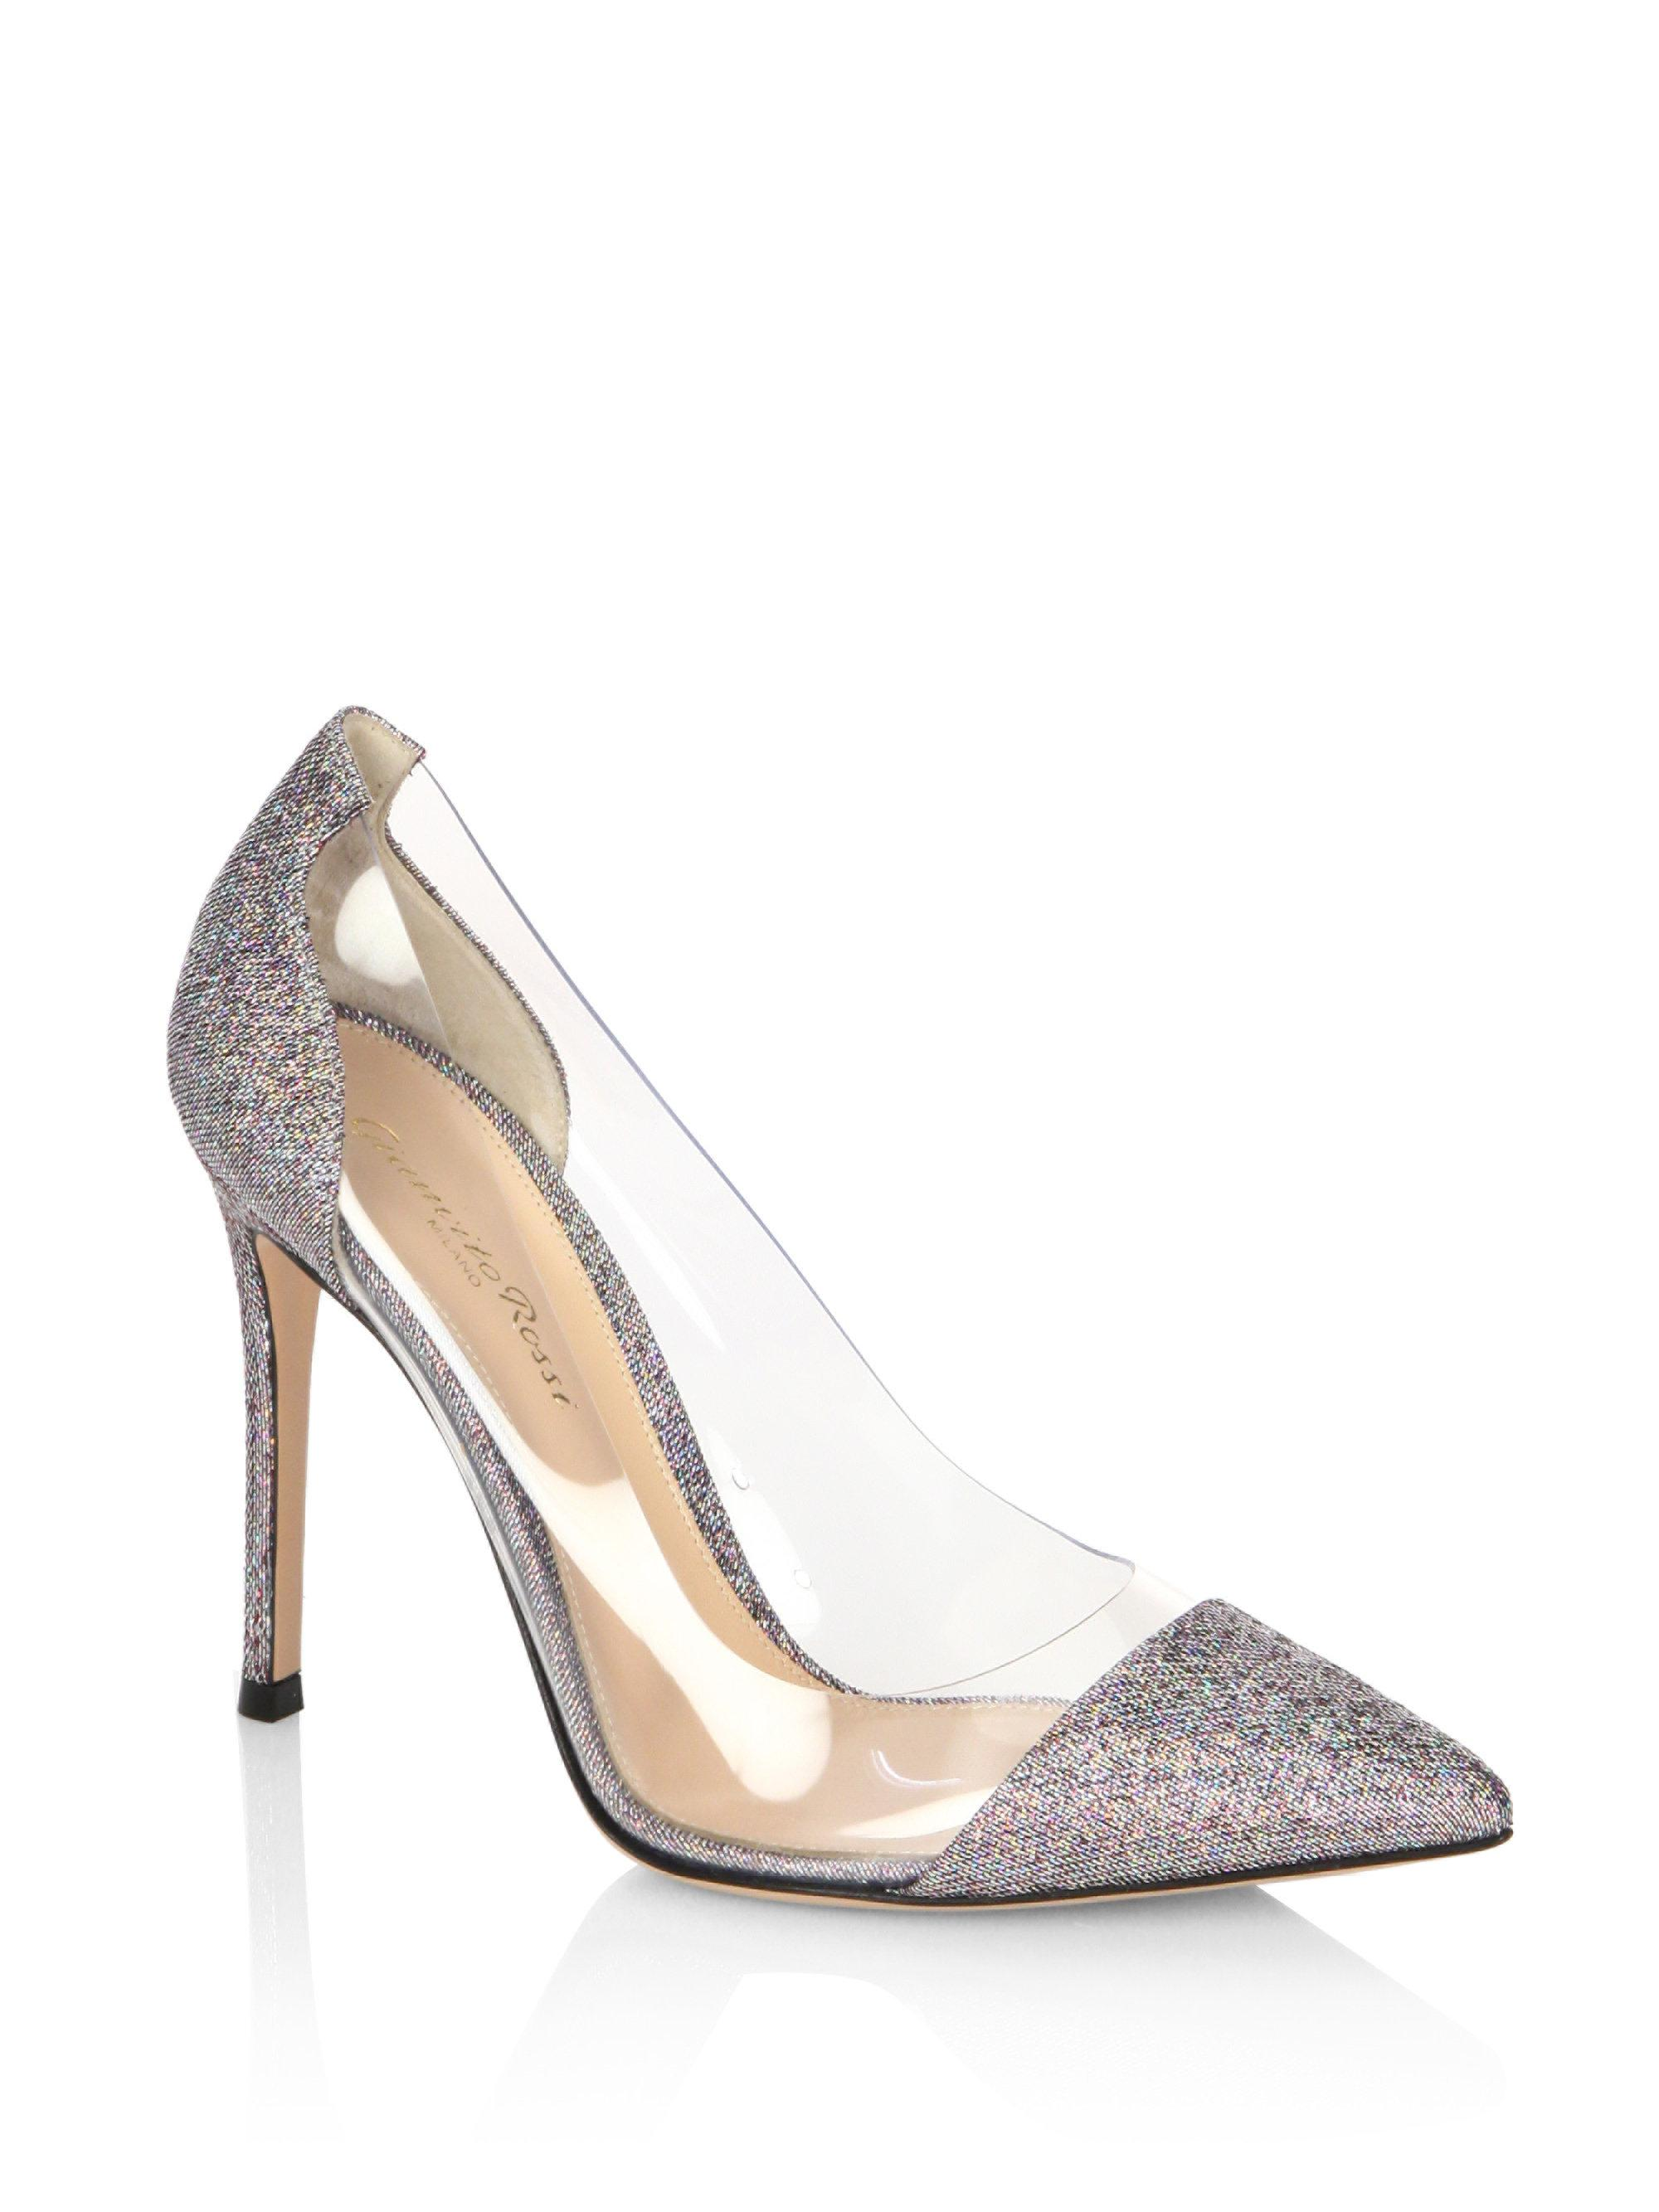 Gianvito Rossi 205 stiletto pumps From China Free Shipping Sale Marketable Free Shipping For Sale Online Store uW6GG7K